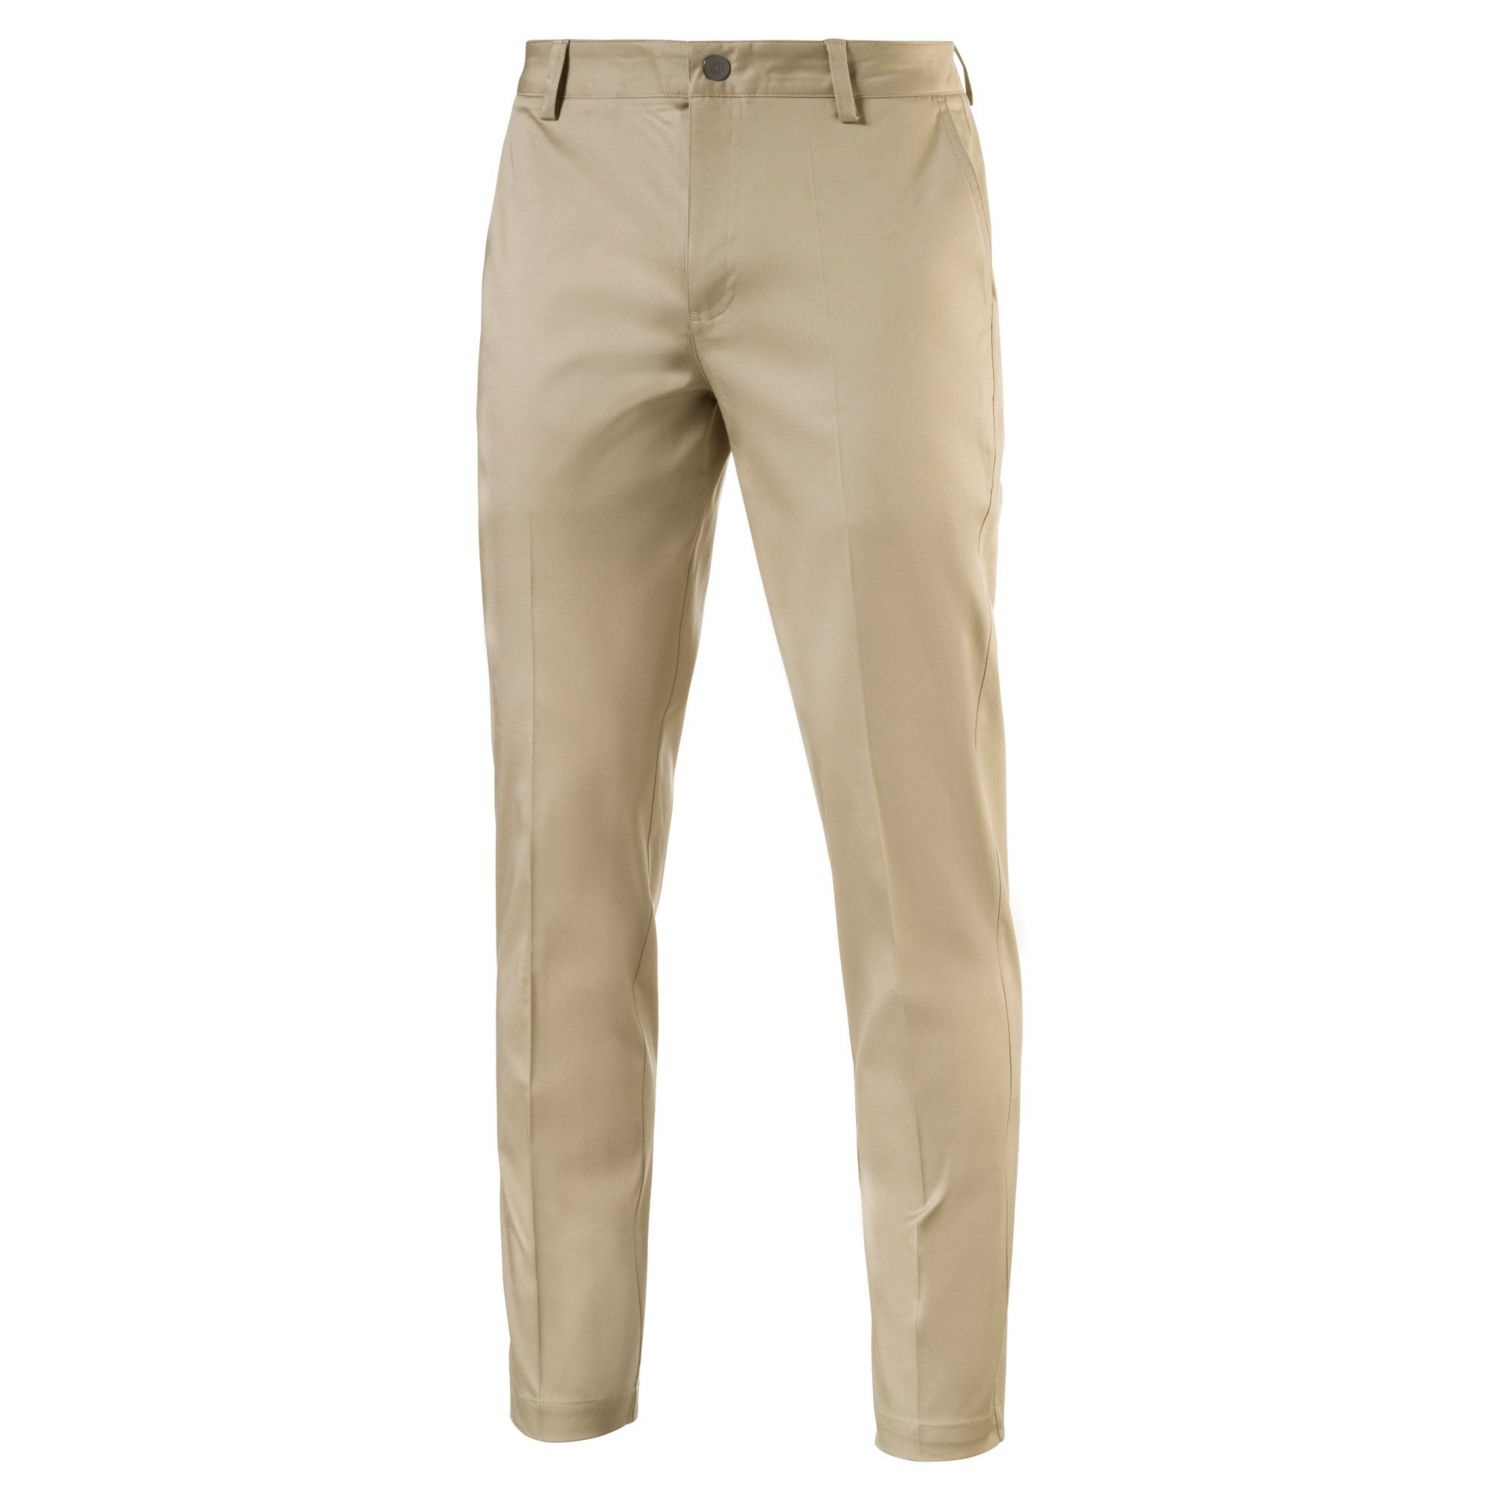 Less formal than dress pants and more dressy than a casual jean, these pants are available in cotton and cotton-blend styles, which allows them to be dressed up or down. Additionally, the range of colours chinos come in distinguishes it as an alluring trouser choice for most gentlemen.